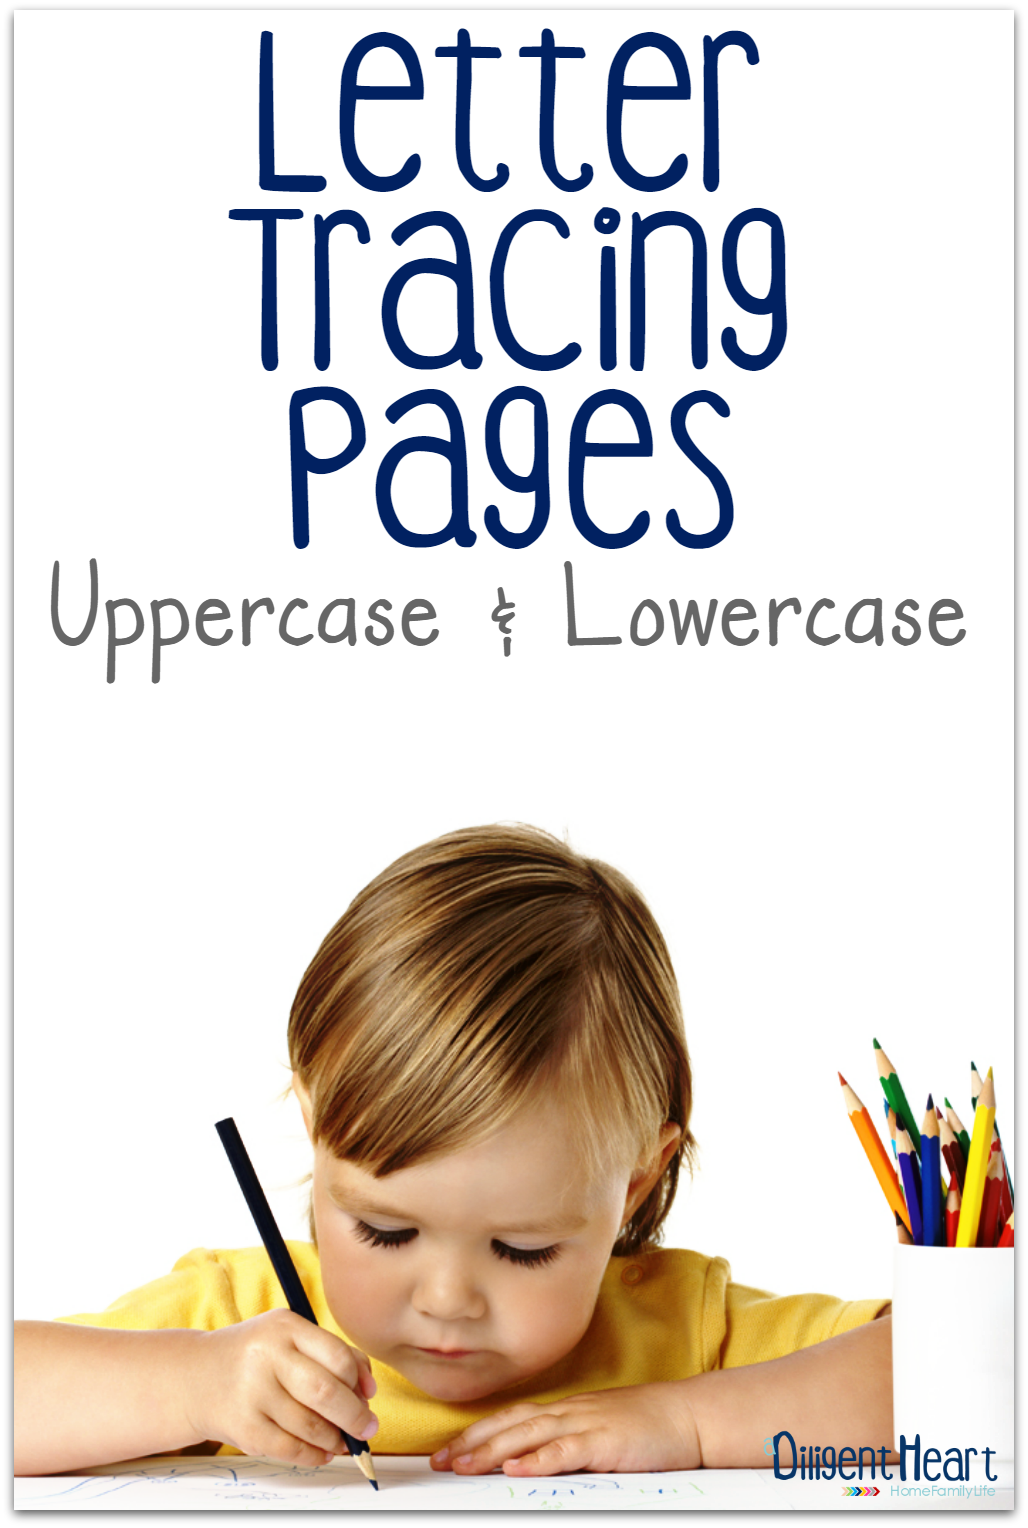 Looking for some great letter tracing activities for your little ones? These are a great addition to your kiddos letter practice! Letter Tracing Pages Uppercase and Lowercase | adiligentheart.com